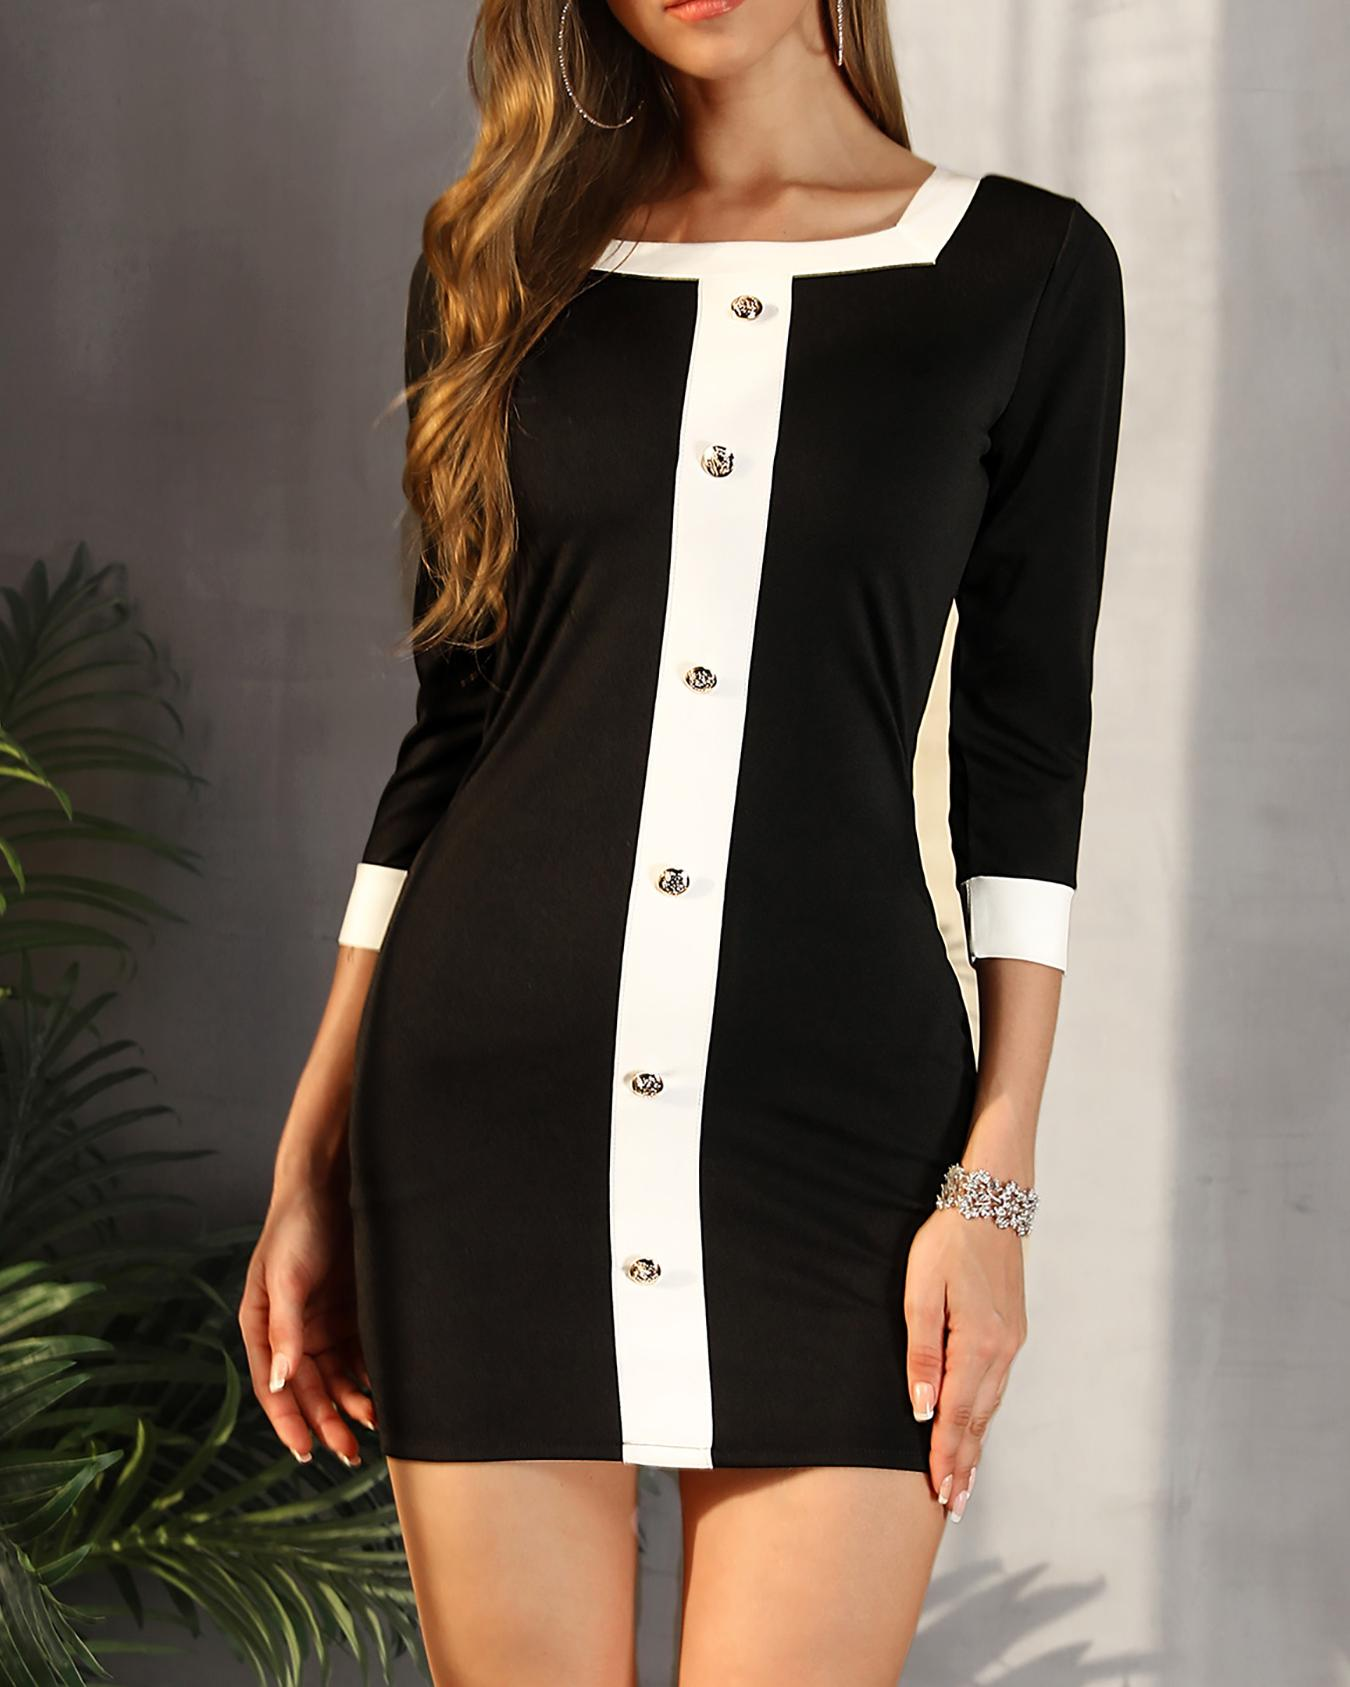 ivrose / Contrast Color Single Breasted Mini Dress